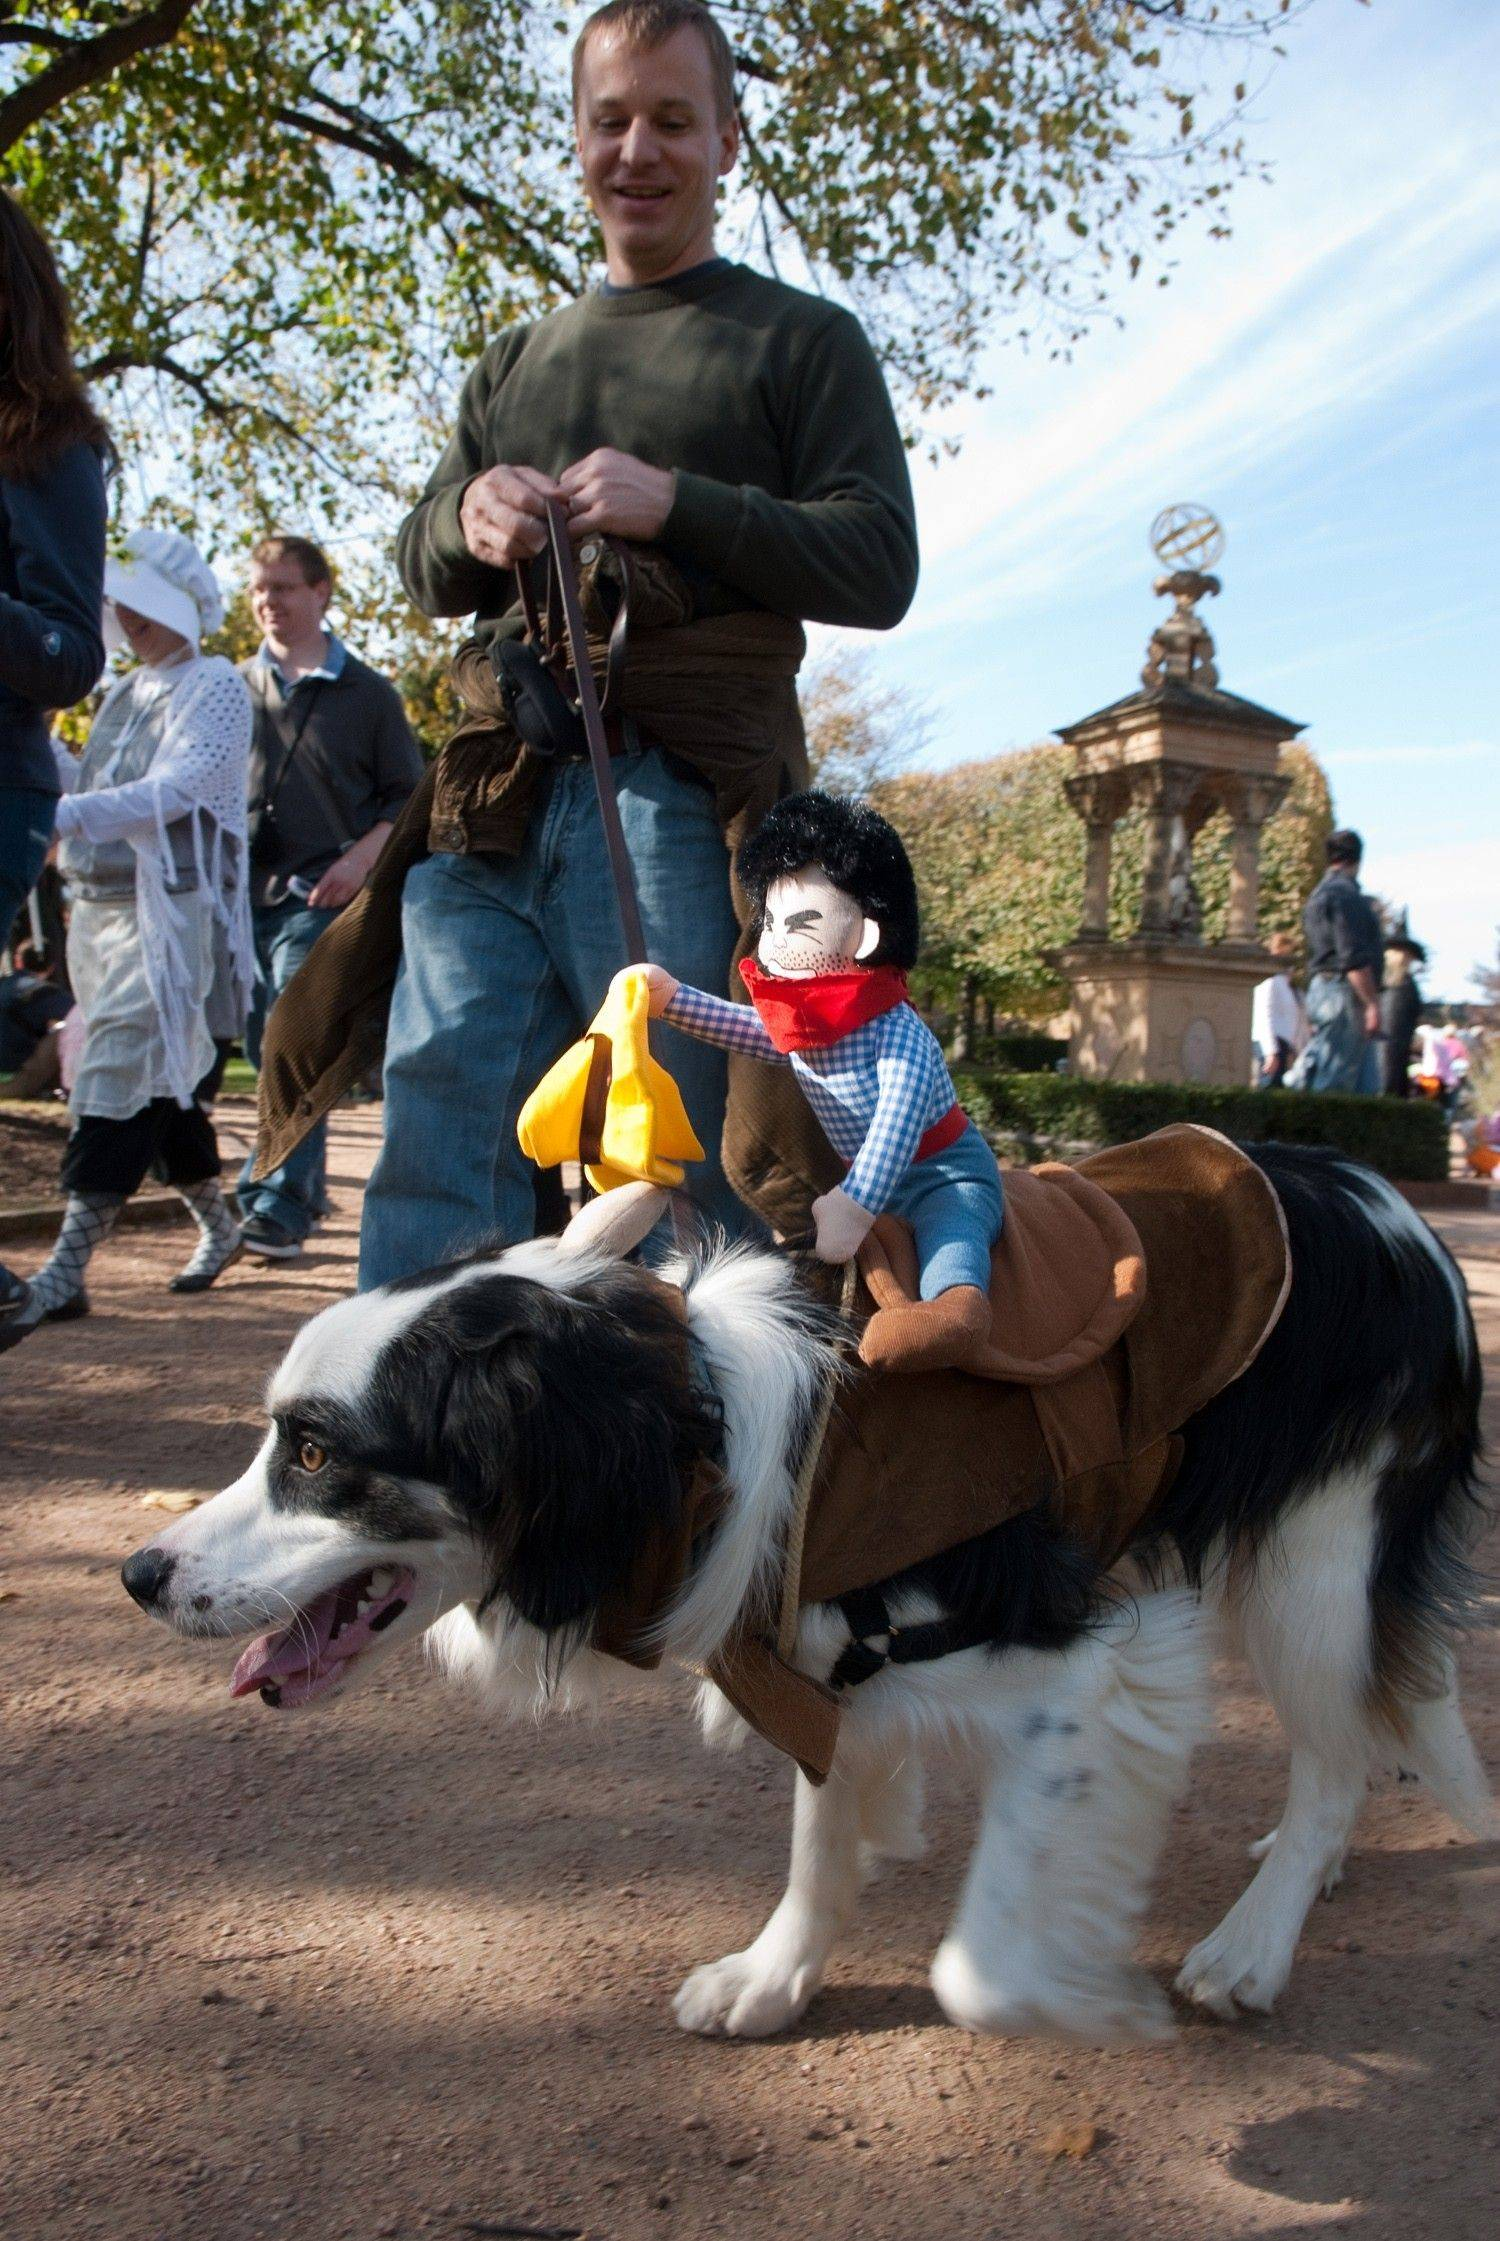 Dress up your dog and head to the Chicago Botanic Garden for the annual Spooky Pooch Parade.